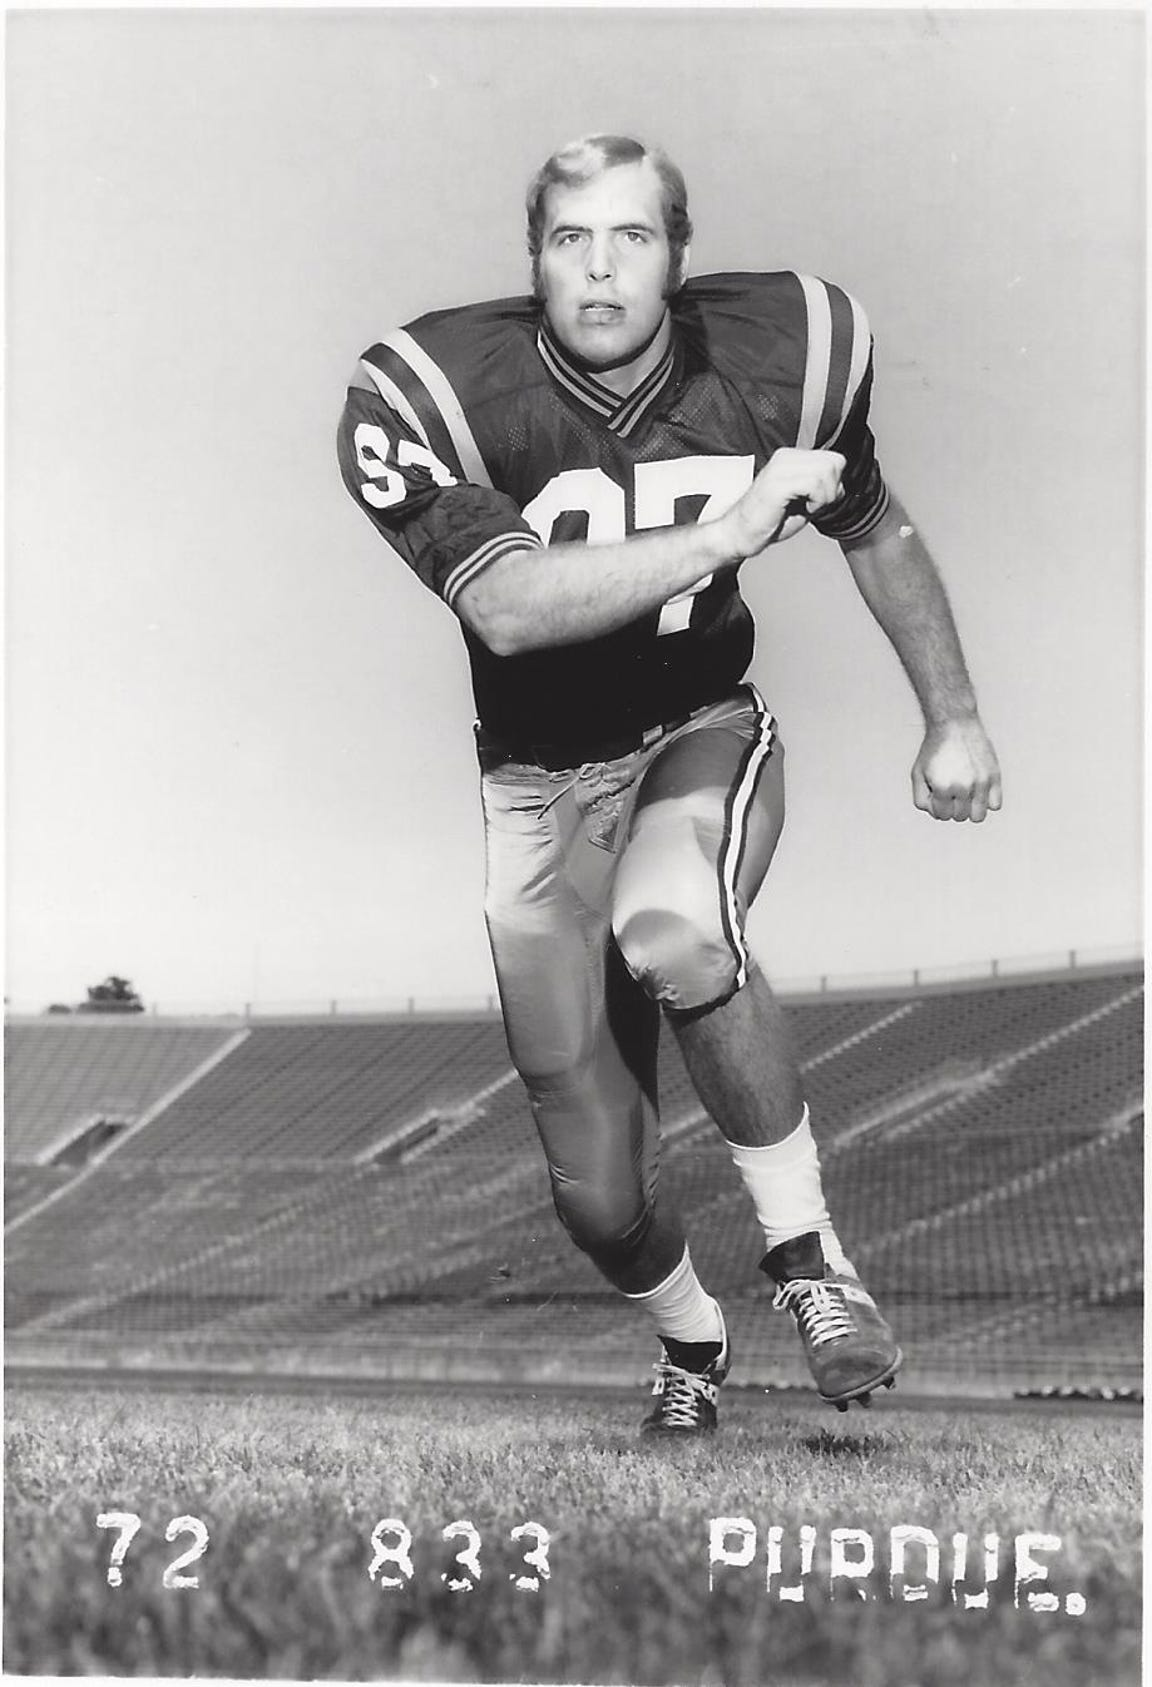 Steve Baumgartner was one of five Purdue football players taken in the first two rounds of the 1973 NFL Draft.